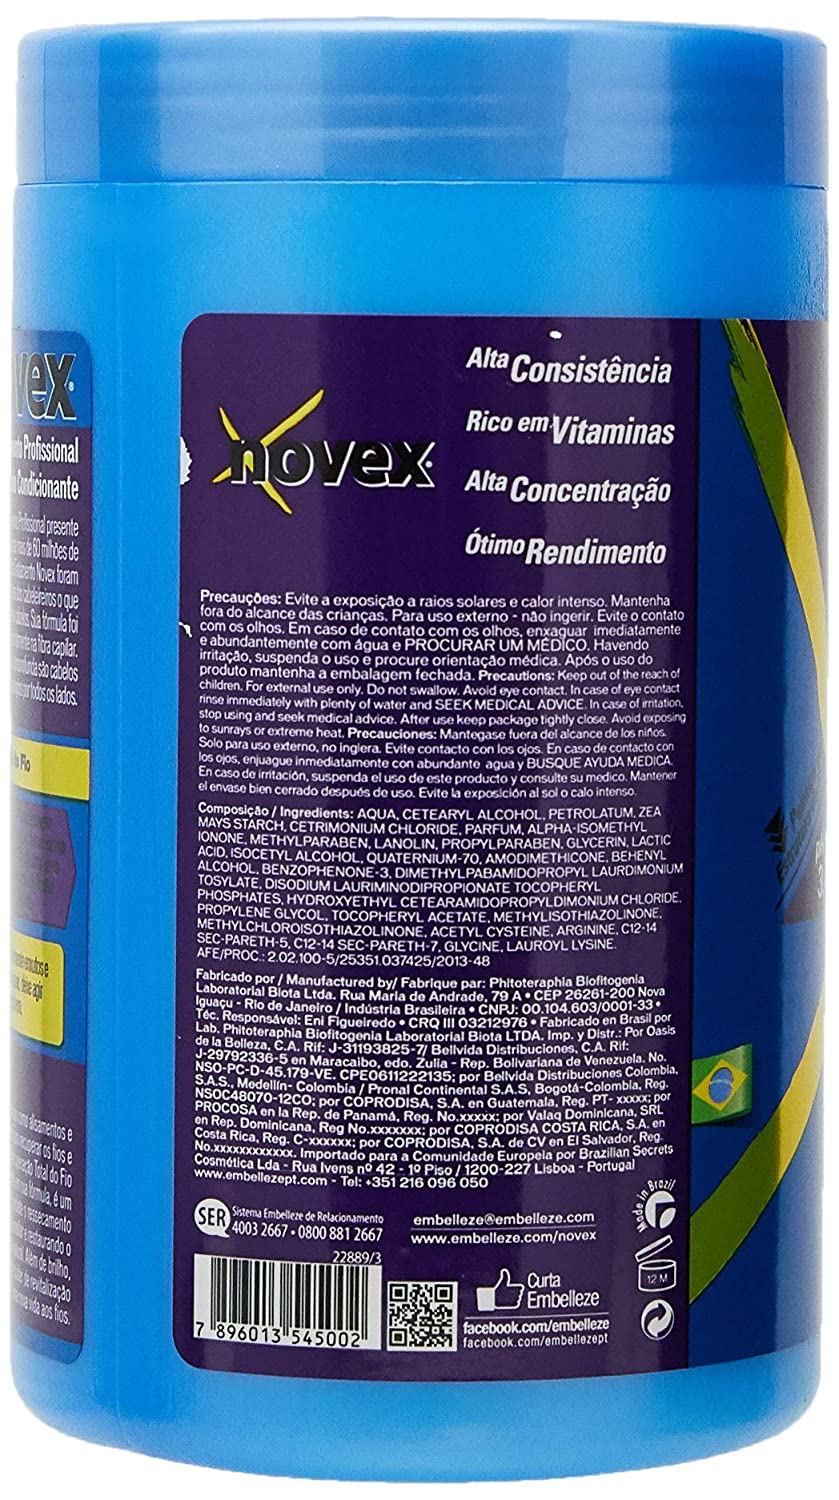 Amazon.com : Embelleze Novex Hair Body Builder Treatment Cream - 14.1 Oz | Embelleze Novex Repositor de Massa Creme de Tratamento Capilar - 400 g : Hair And ...